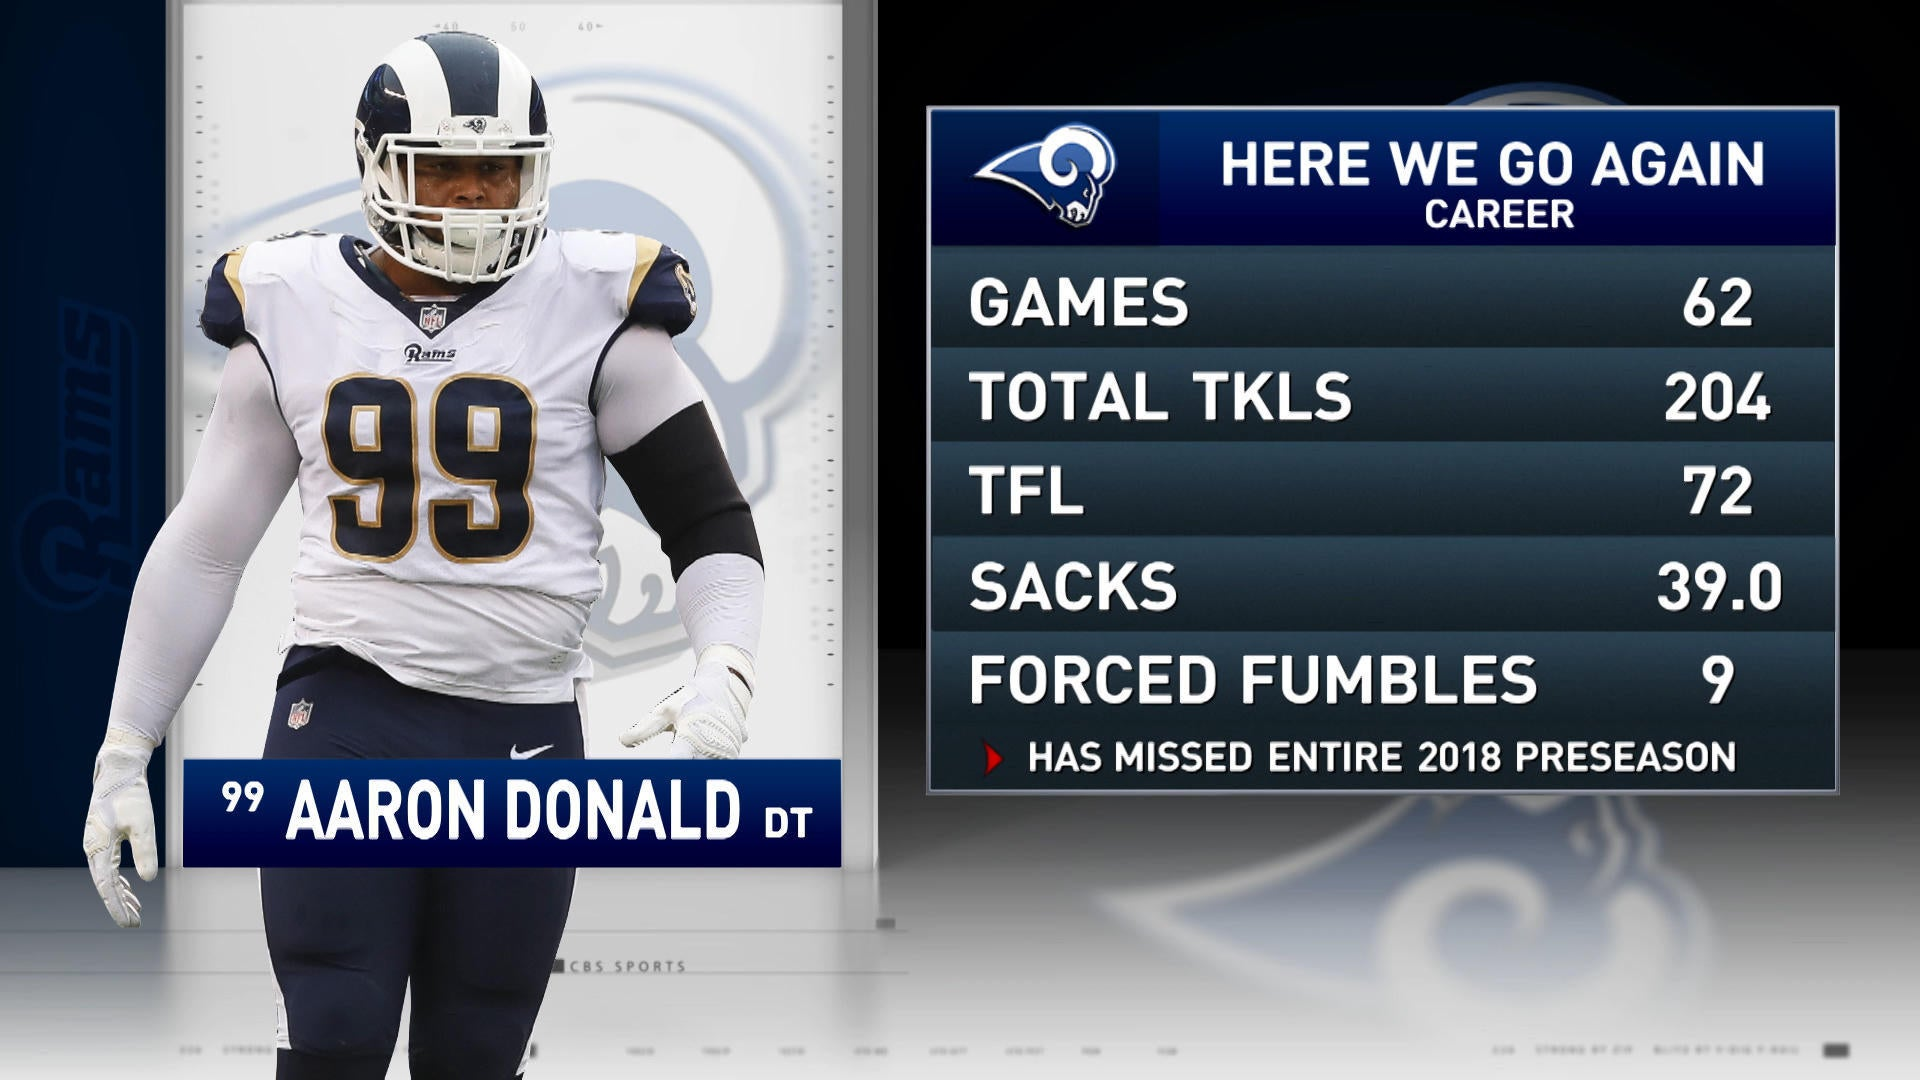 finest selection 0b022 ee06b That Other Pregame Show: Rams Aaron Donald